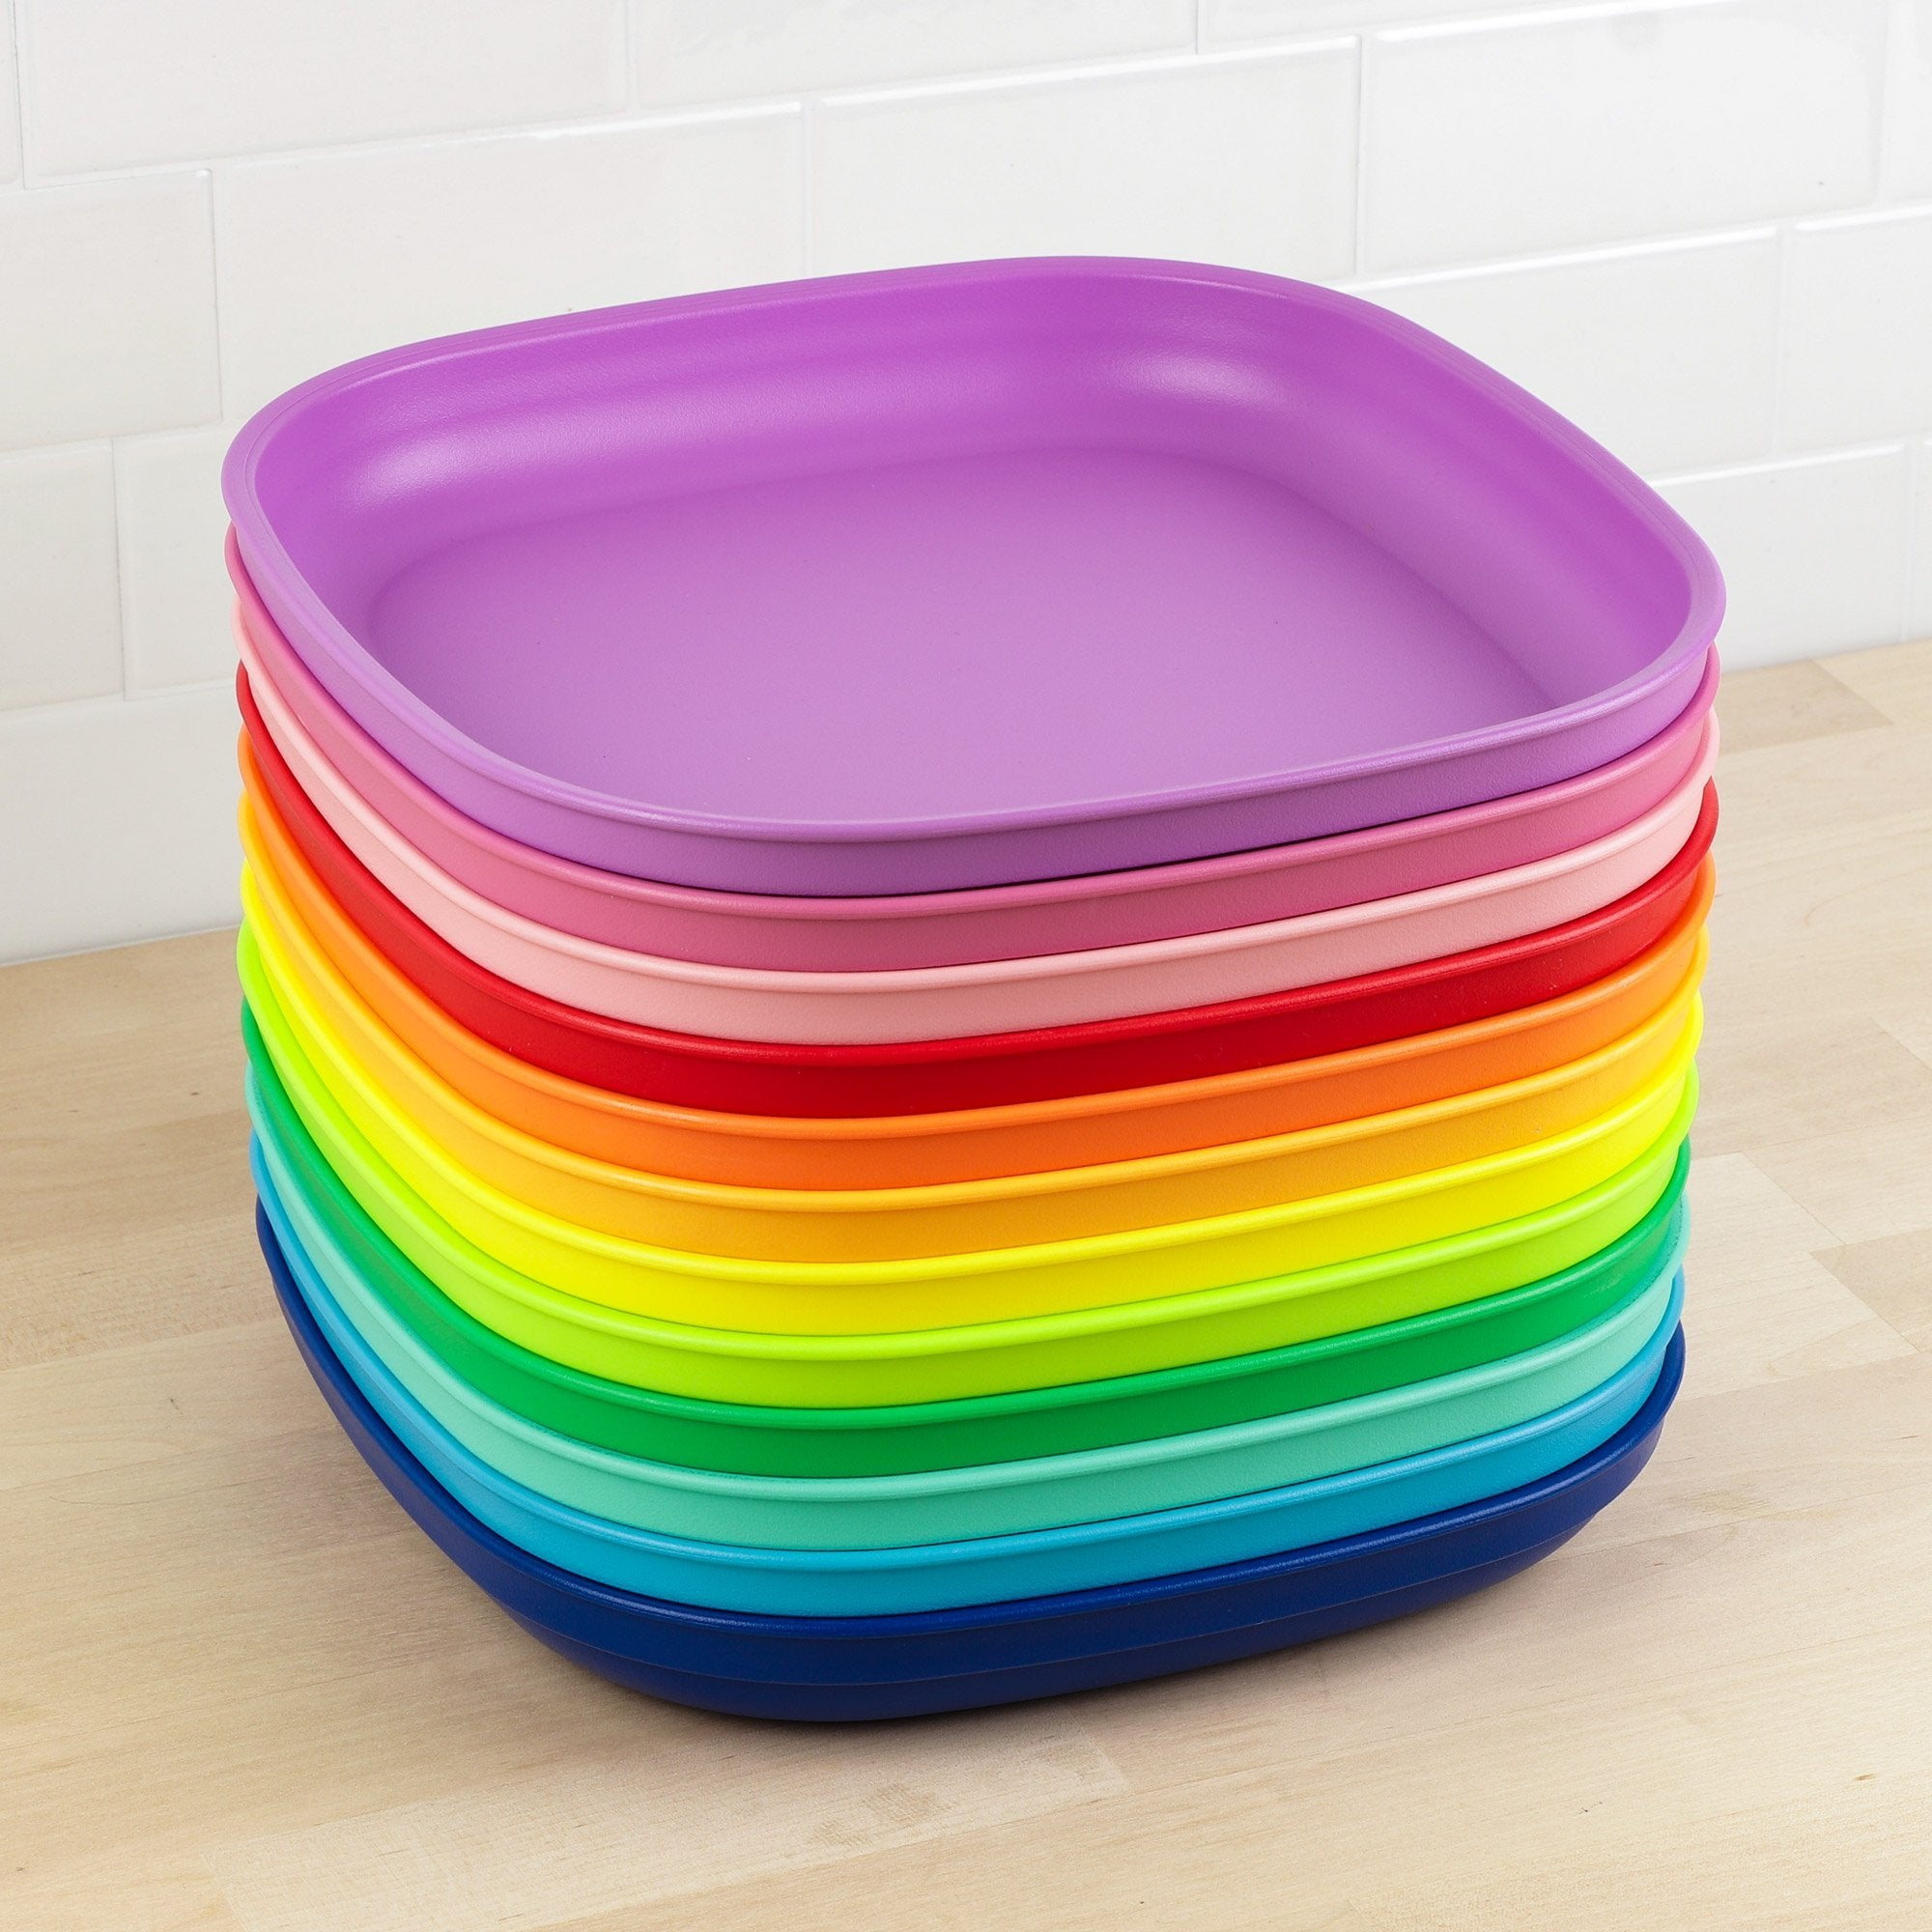 Replay 12 Piece Sets Rainbow Replay Dinnerware Large Plates at Little Earth Nest Eco Shop